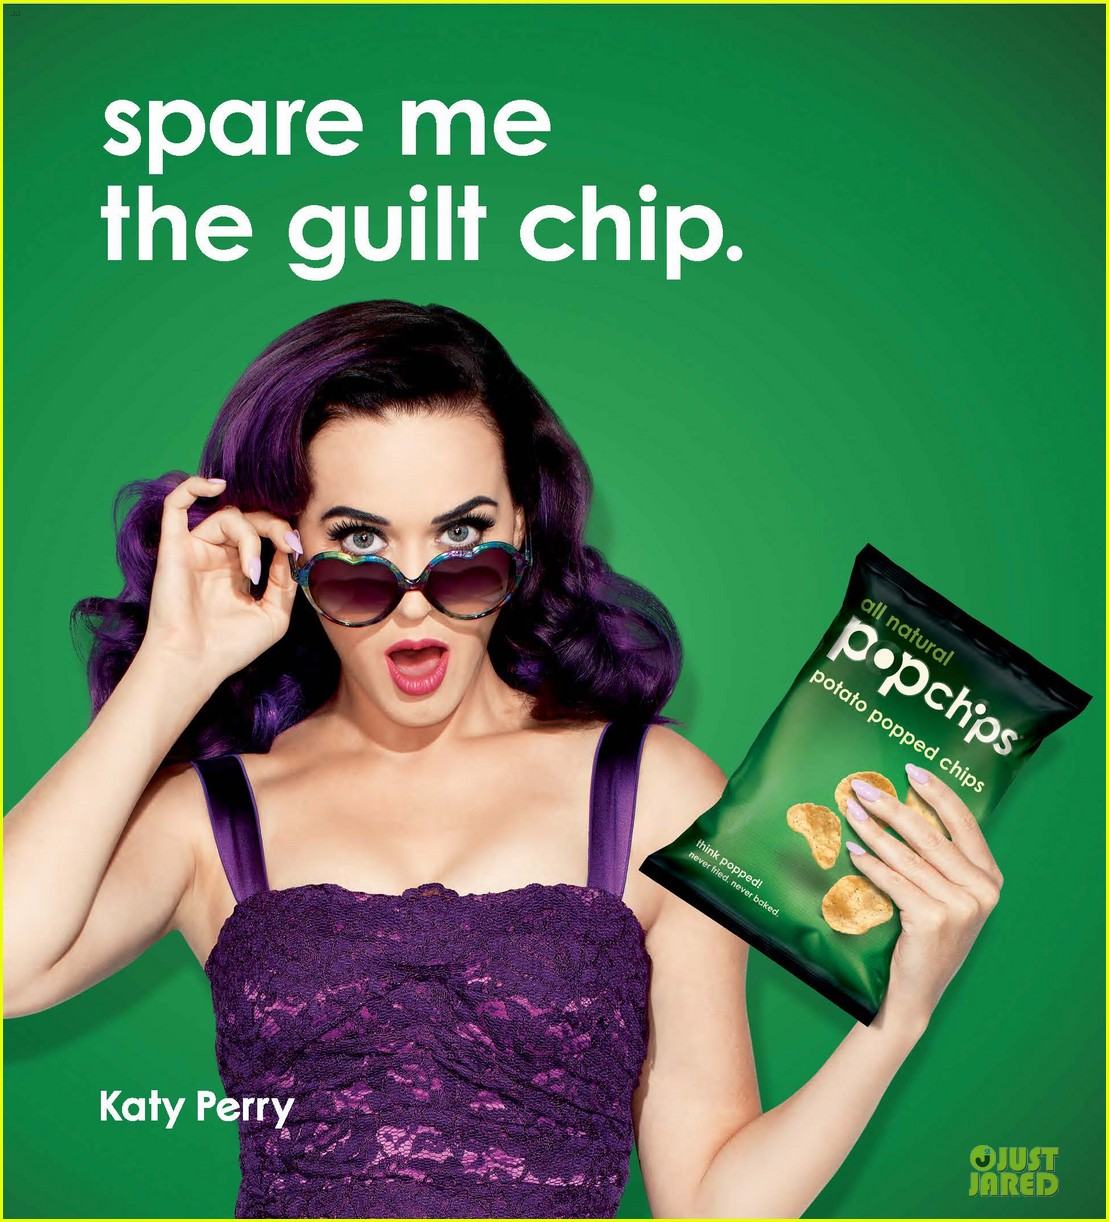 katy-perry-popchips-ad-01